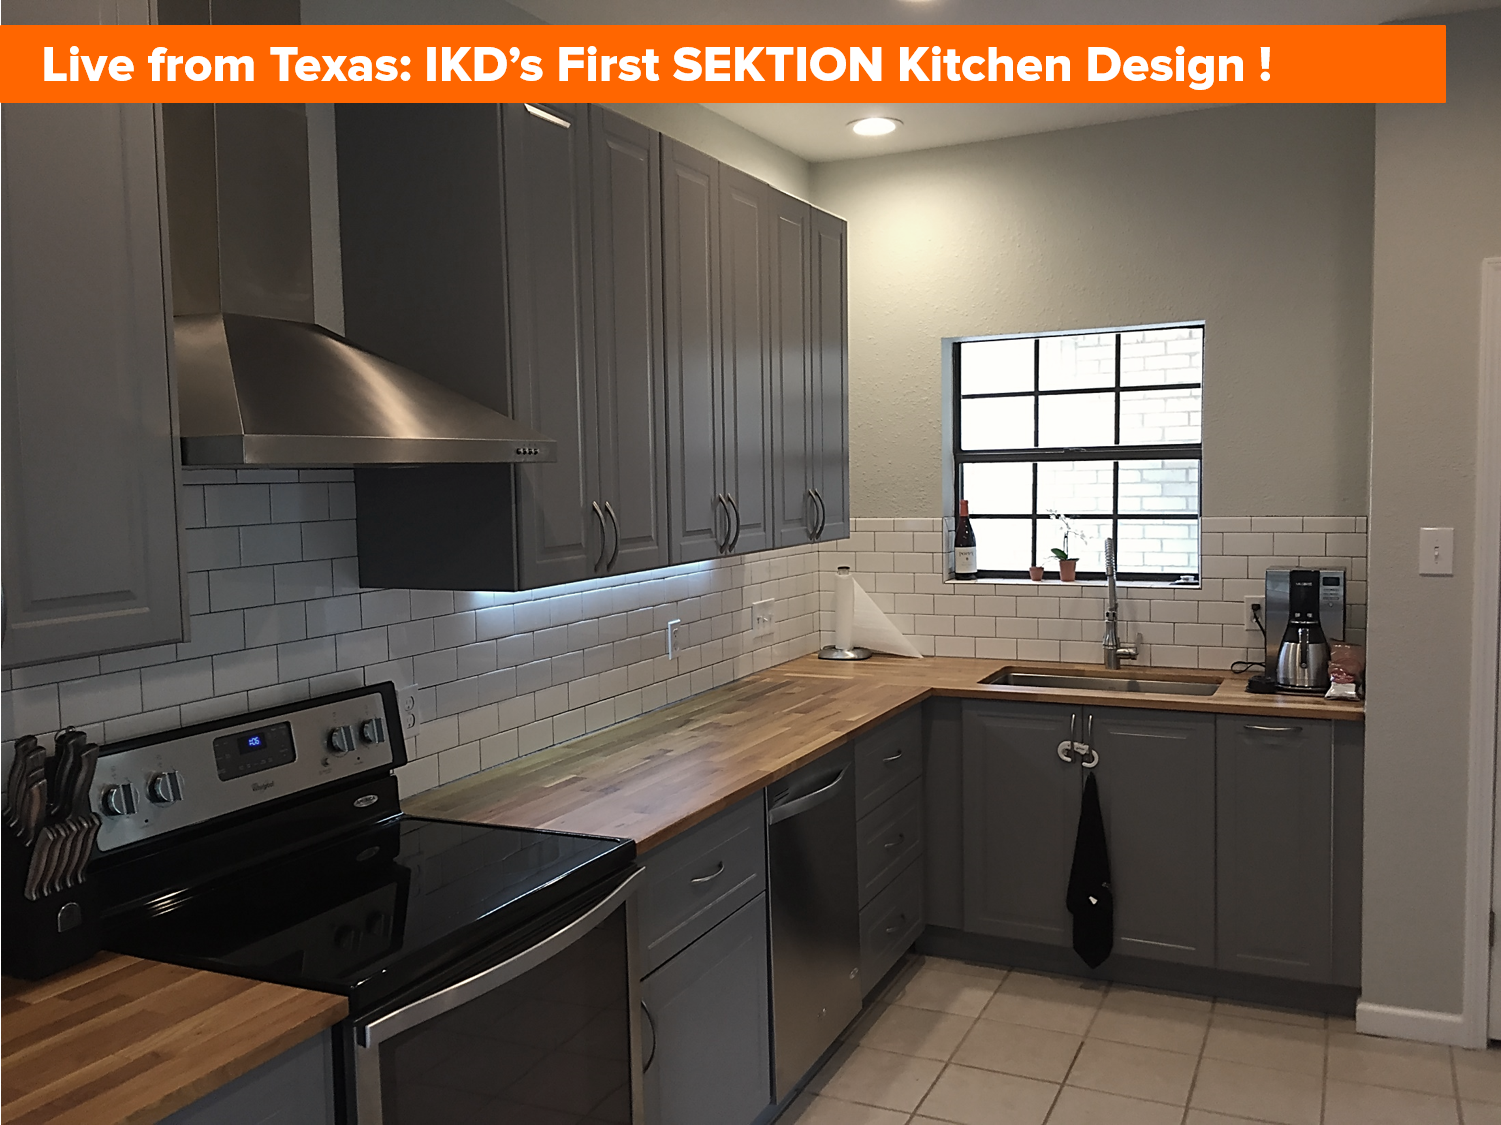 Ikea Kitchen Design Service Live From Texas Photos Of Ikds First Ikea Kitchen Design Using